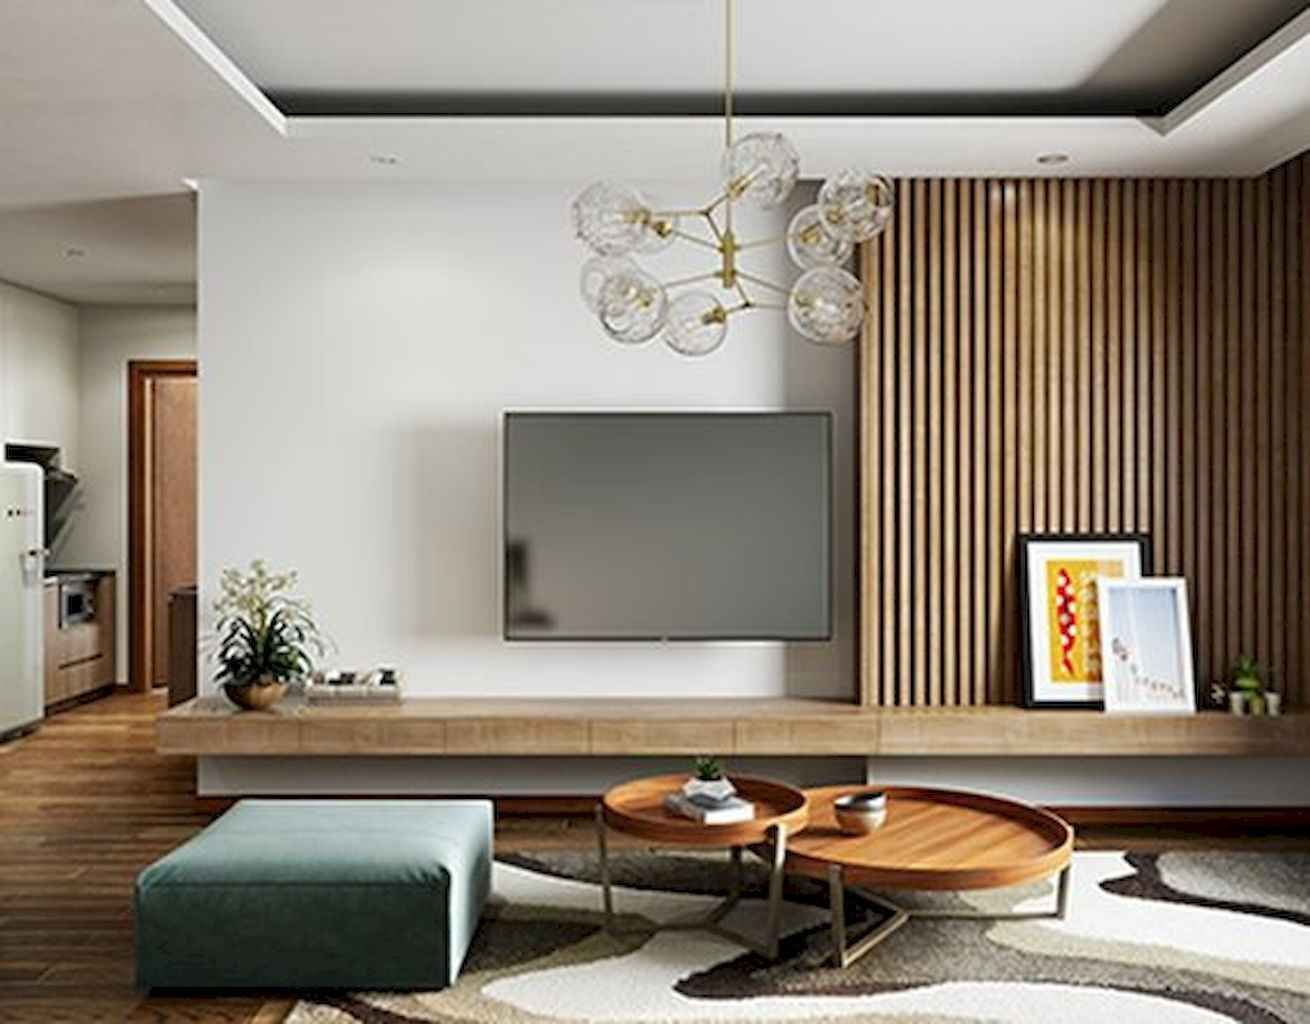 Best Adorable Modern Living Room 2019 65 Cozy Living Room 640 x 480